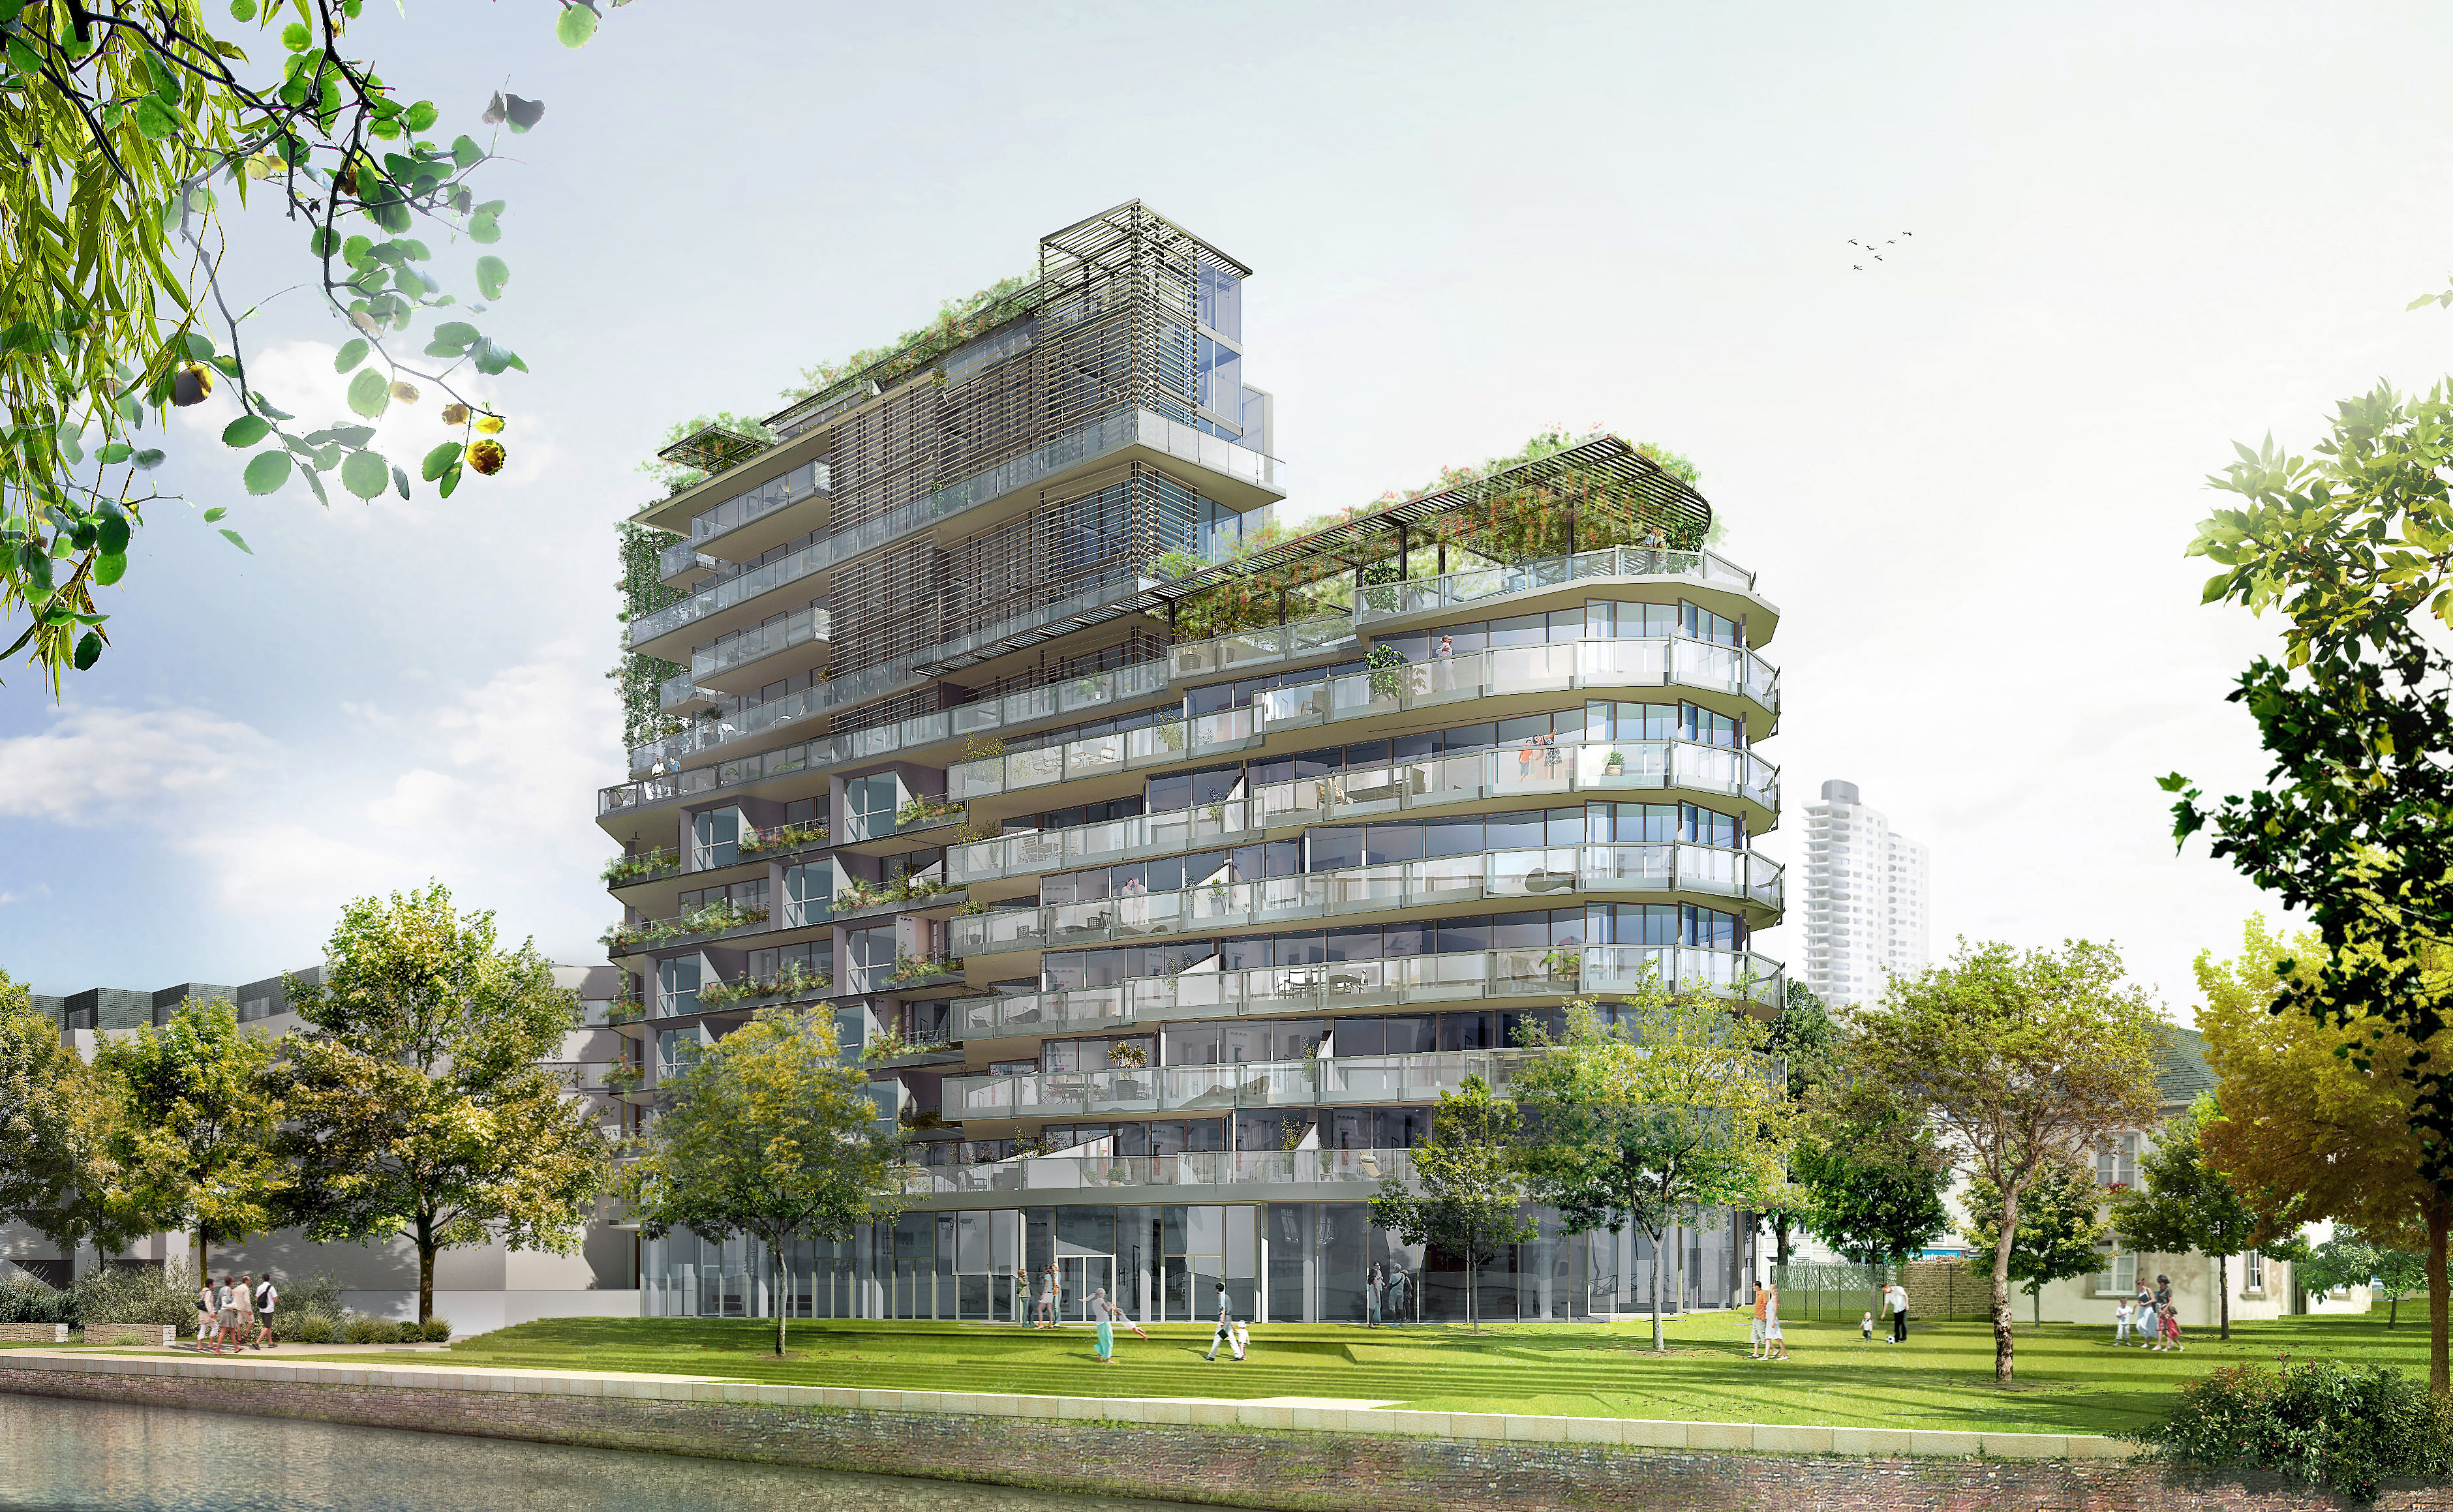 Cap mal rennes r sidence de luxe sign e jean nouvel for Residence luxe